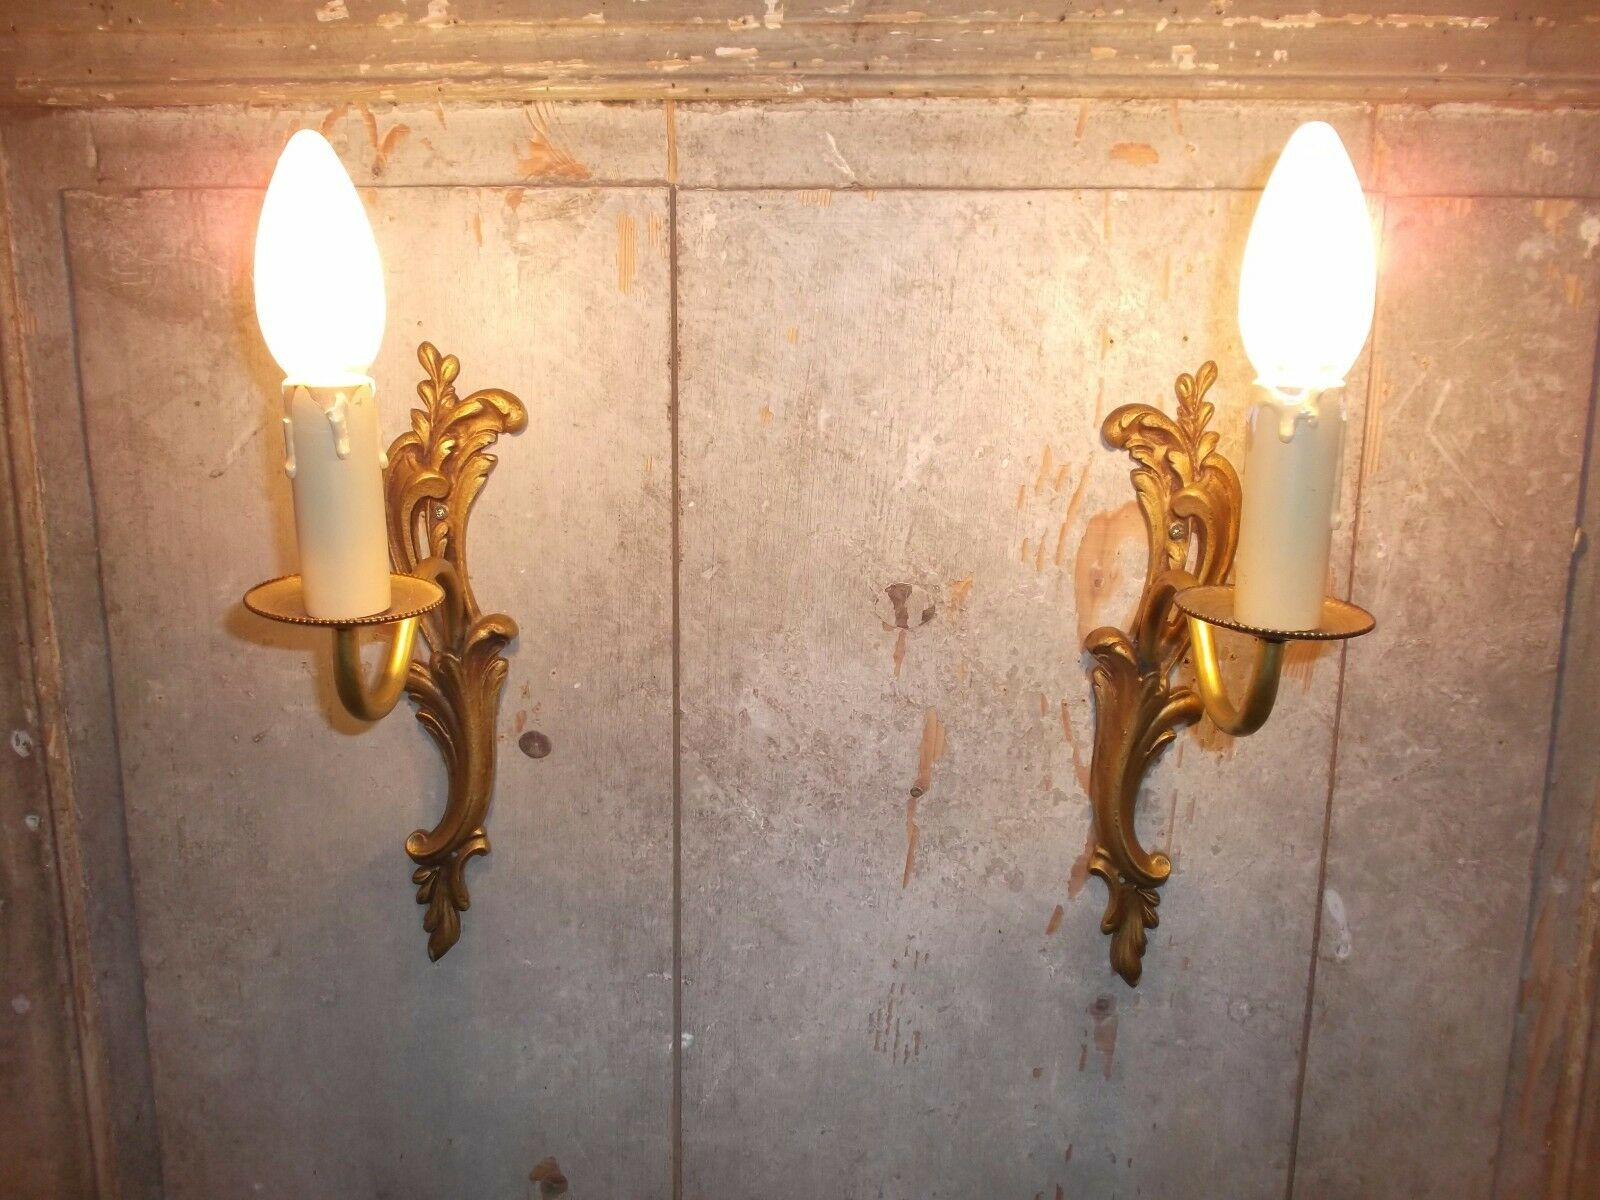 French a pair of patina gold bronze wall light sconces  antique - classic